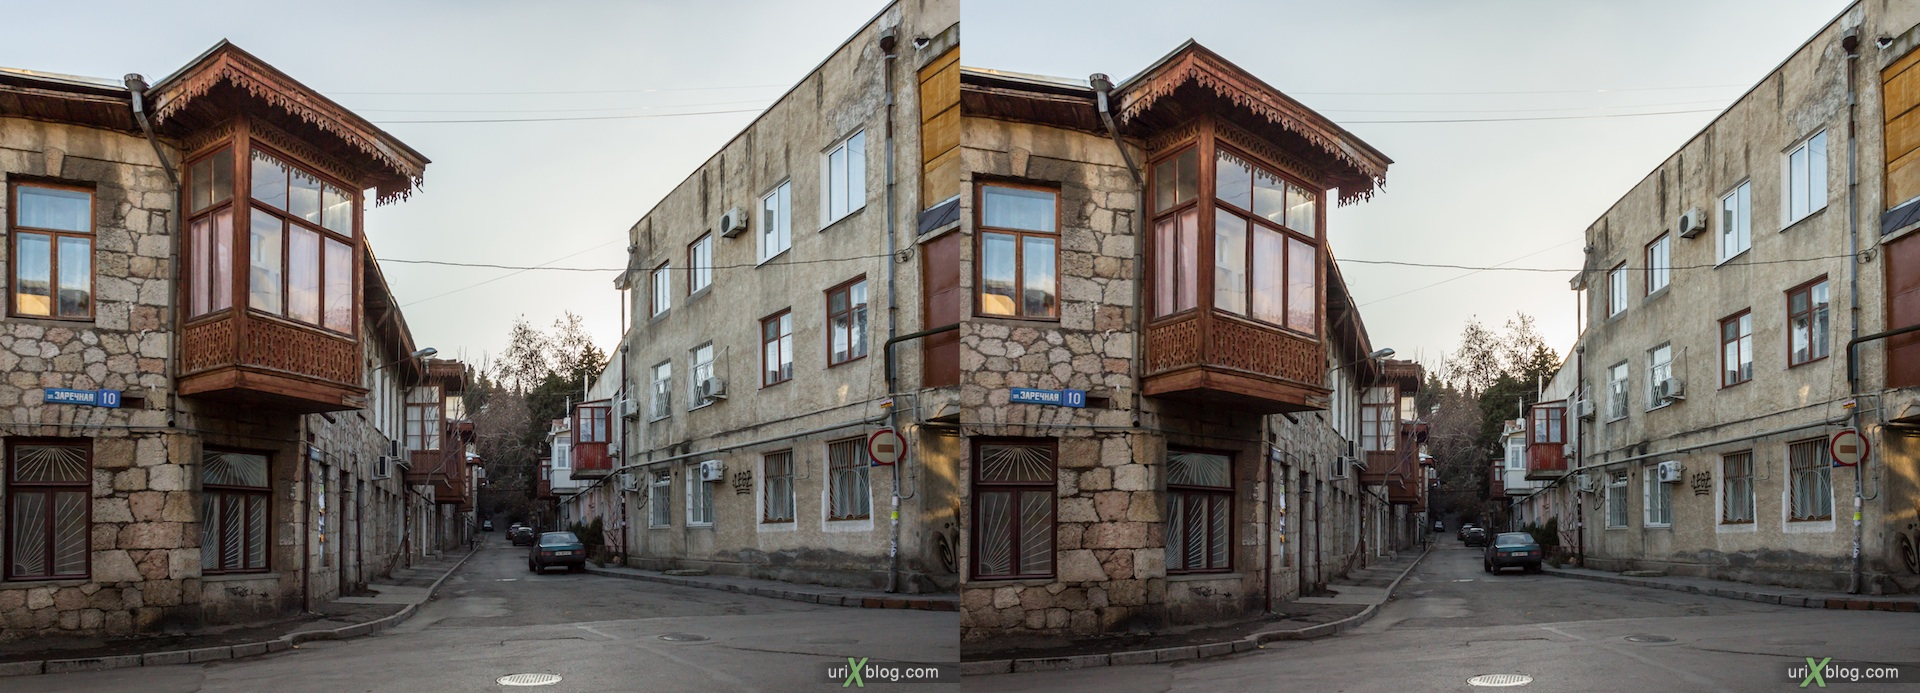 2012, Arkhivnaya street, Yalta, evening, coast city, Crimea, Ukraine, 3D, stereo pair, cross-eyed, crossview, cross view stereo pair, stereoscopic